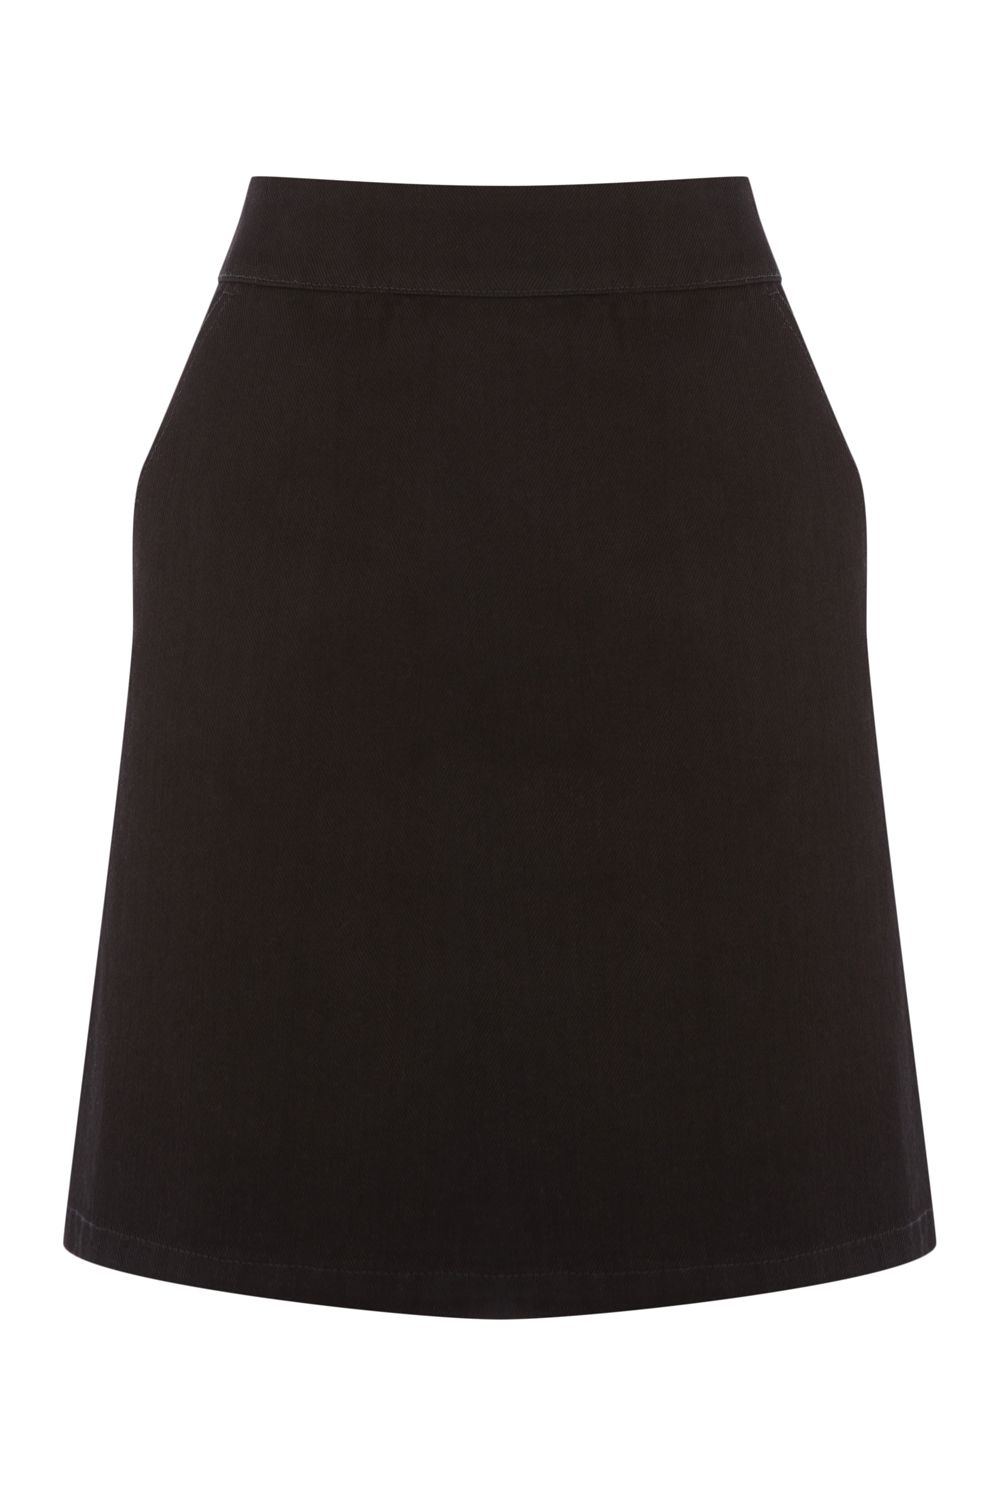 Warehouse A Line Denim Skirt, Black